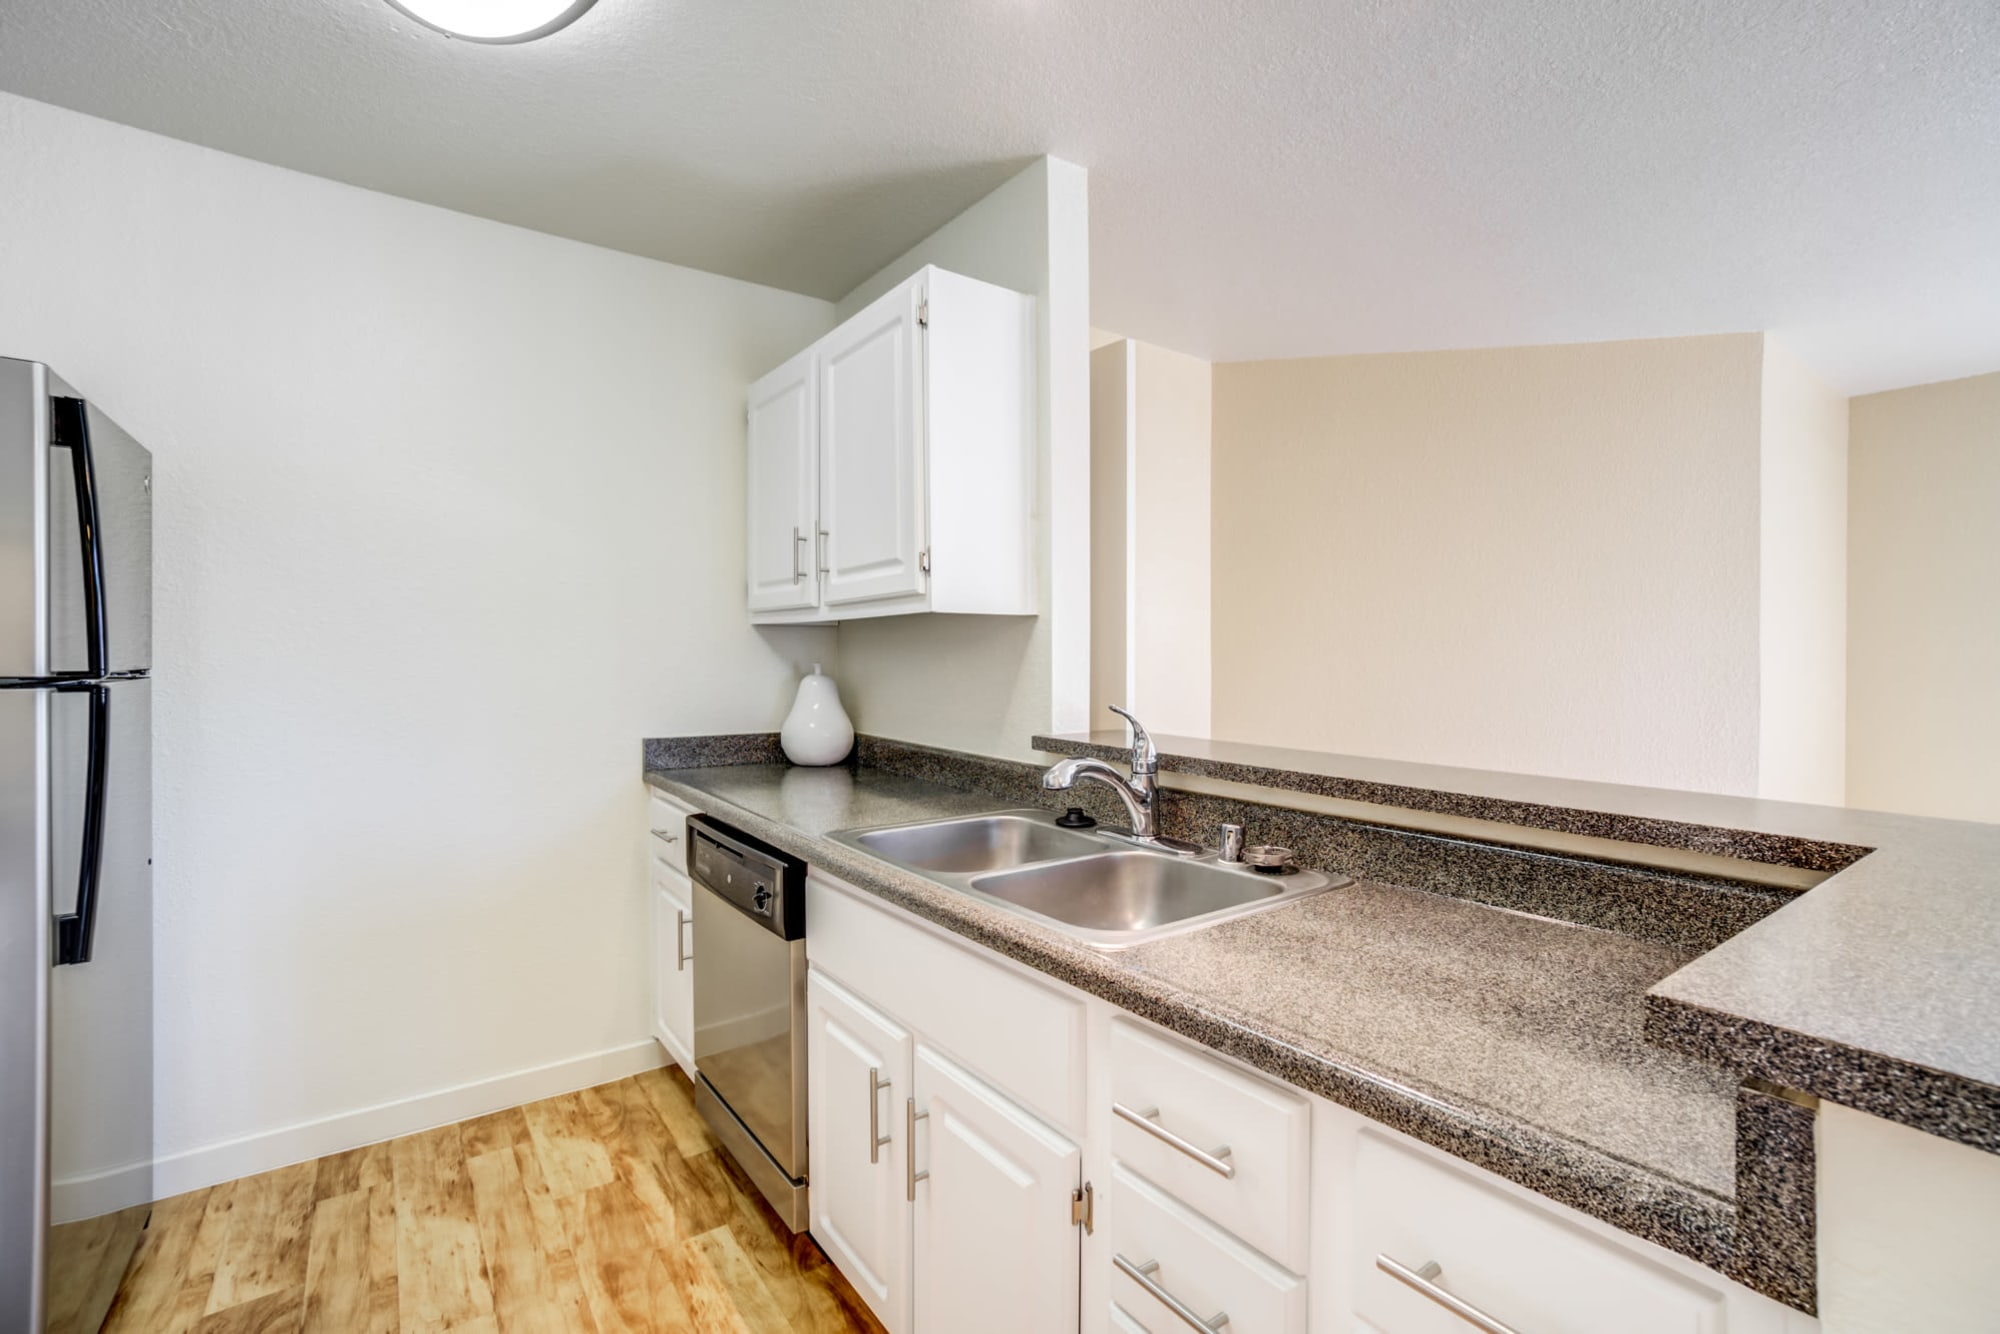 Fully Equipped Kitchen with Stainless steel appliances and bar top at Sommerset Apartments in Vacaville, CA